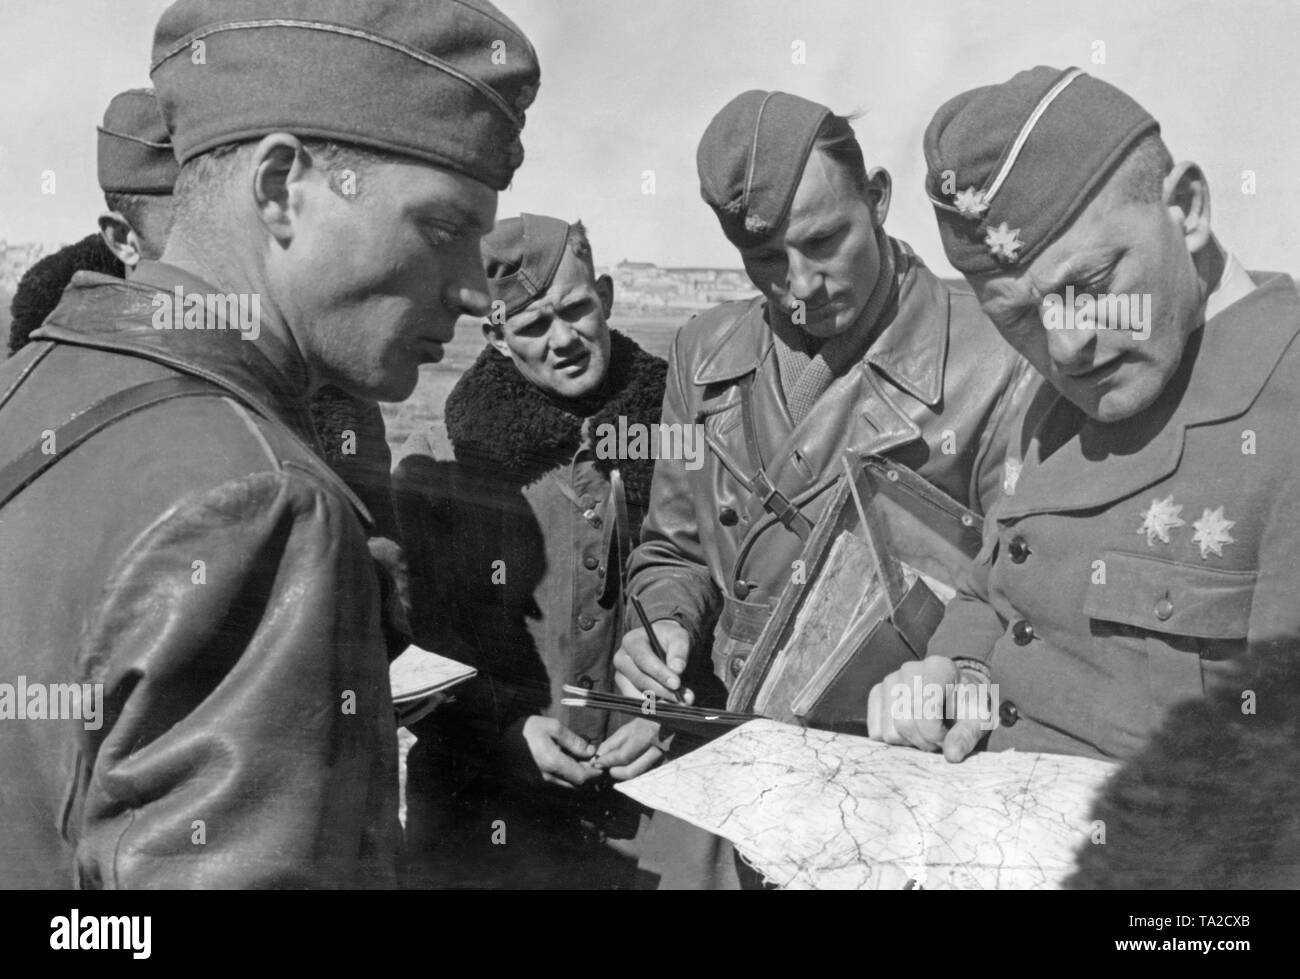 Undated photo of a briefing of combat pilots of the Condor Legion during the Spanish Civil War in 1939. A Major (right) shows the pilots their operational areas on a map. - Stock Image